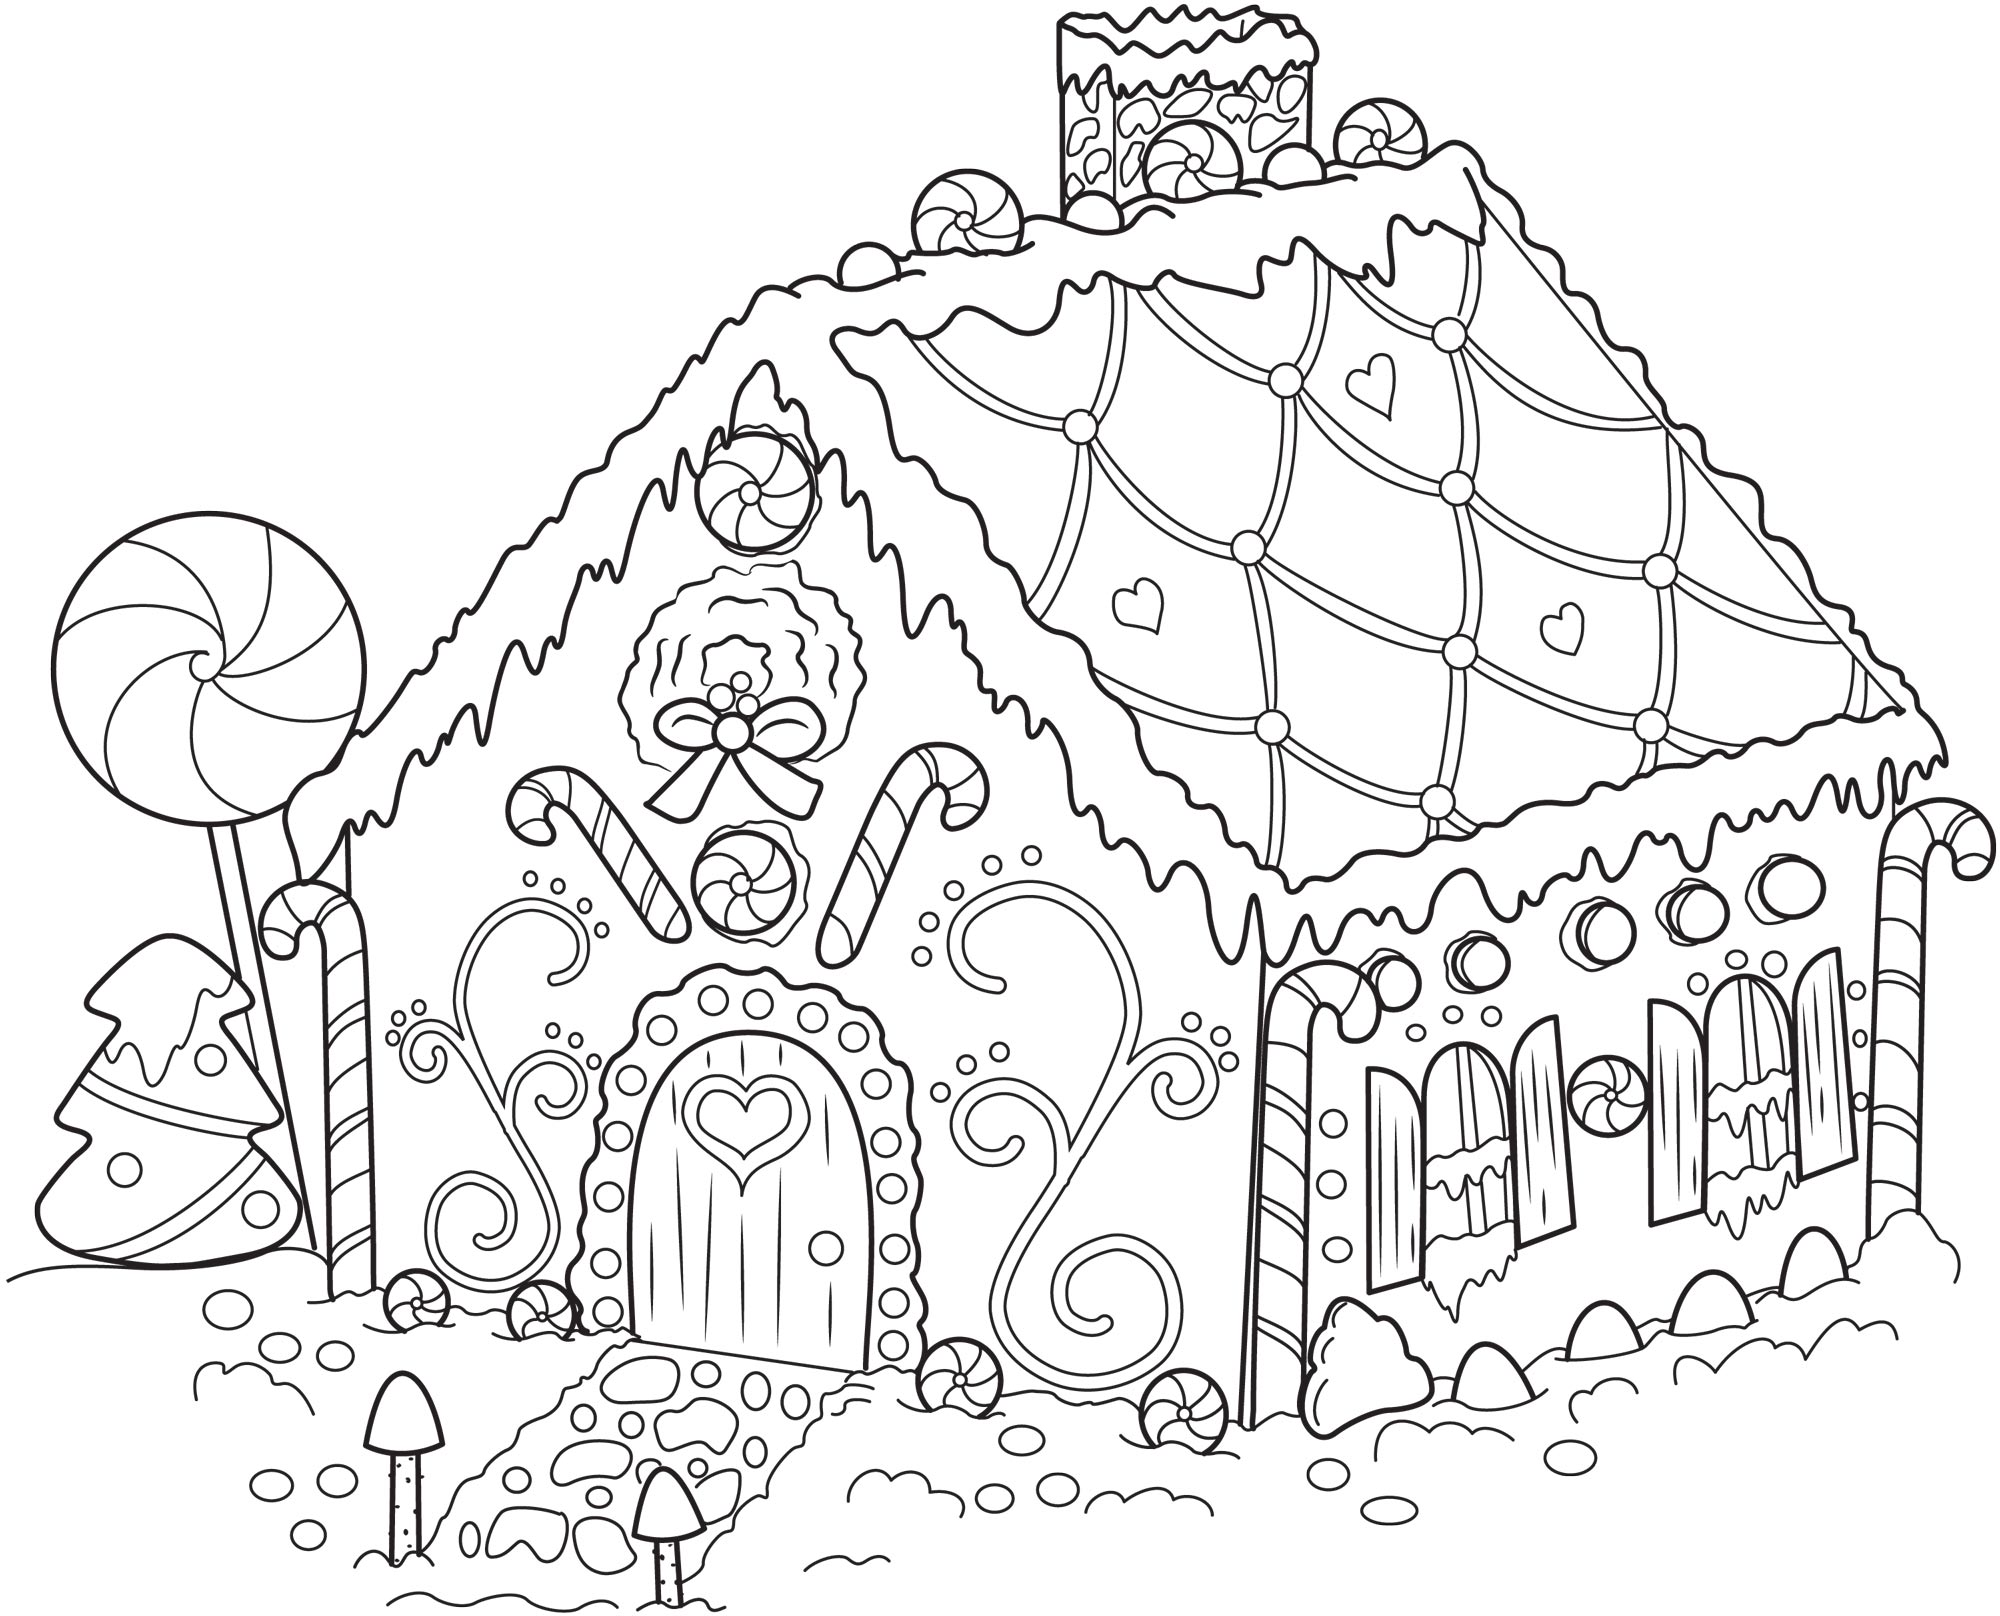 children walking coloring pages - photo#14